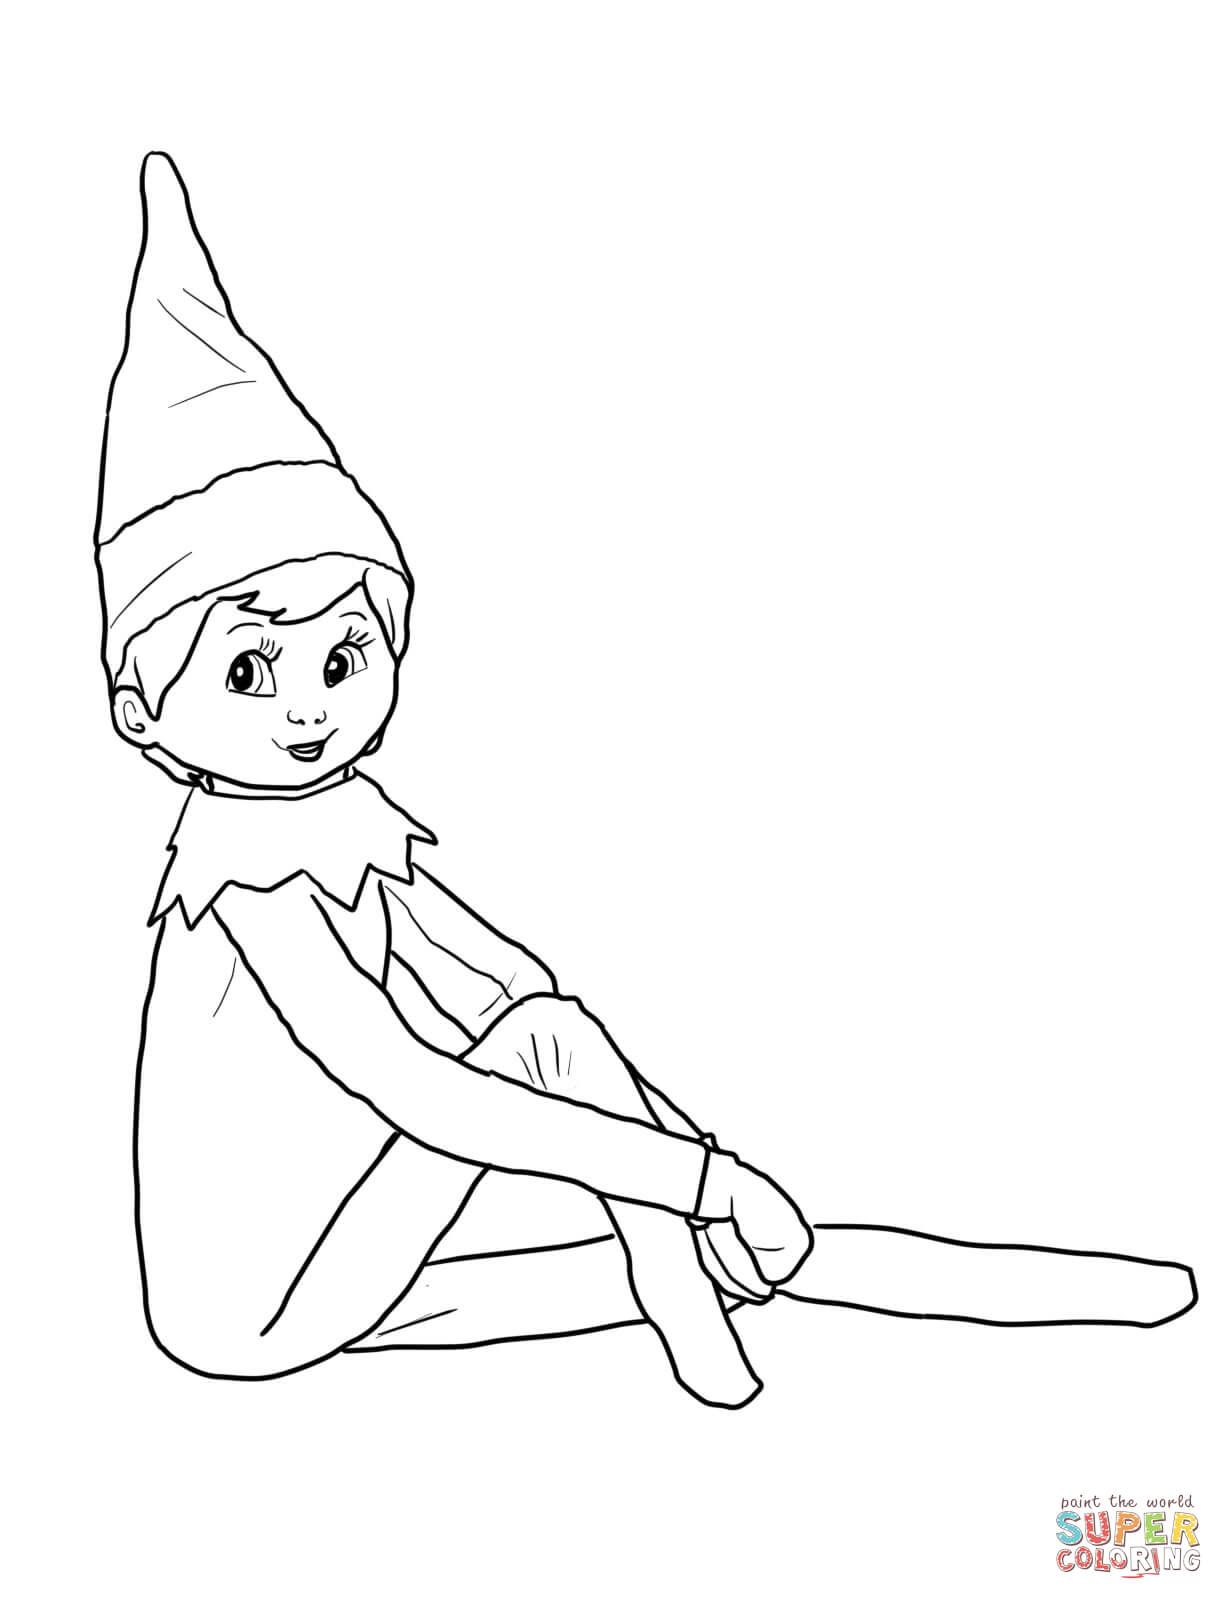 Elf on the shelf coloring page from elf on the shelf category select from 27278 printable crafts of cartoons nature animals bible and many more